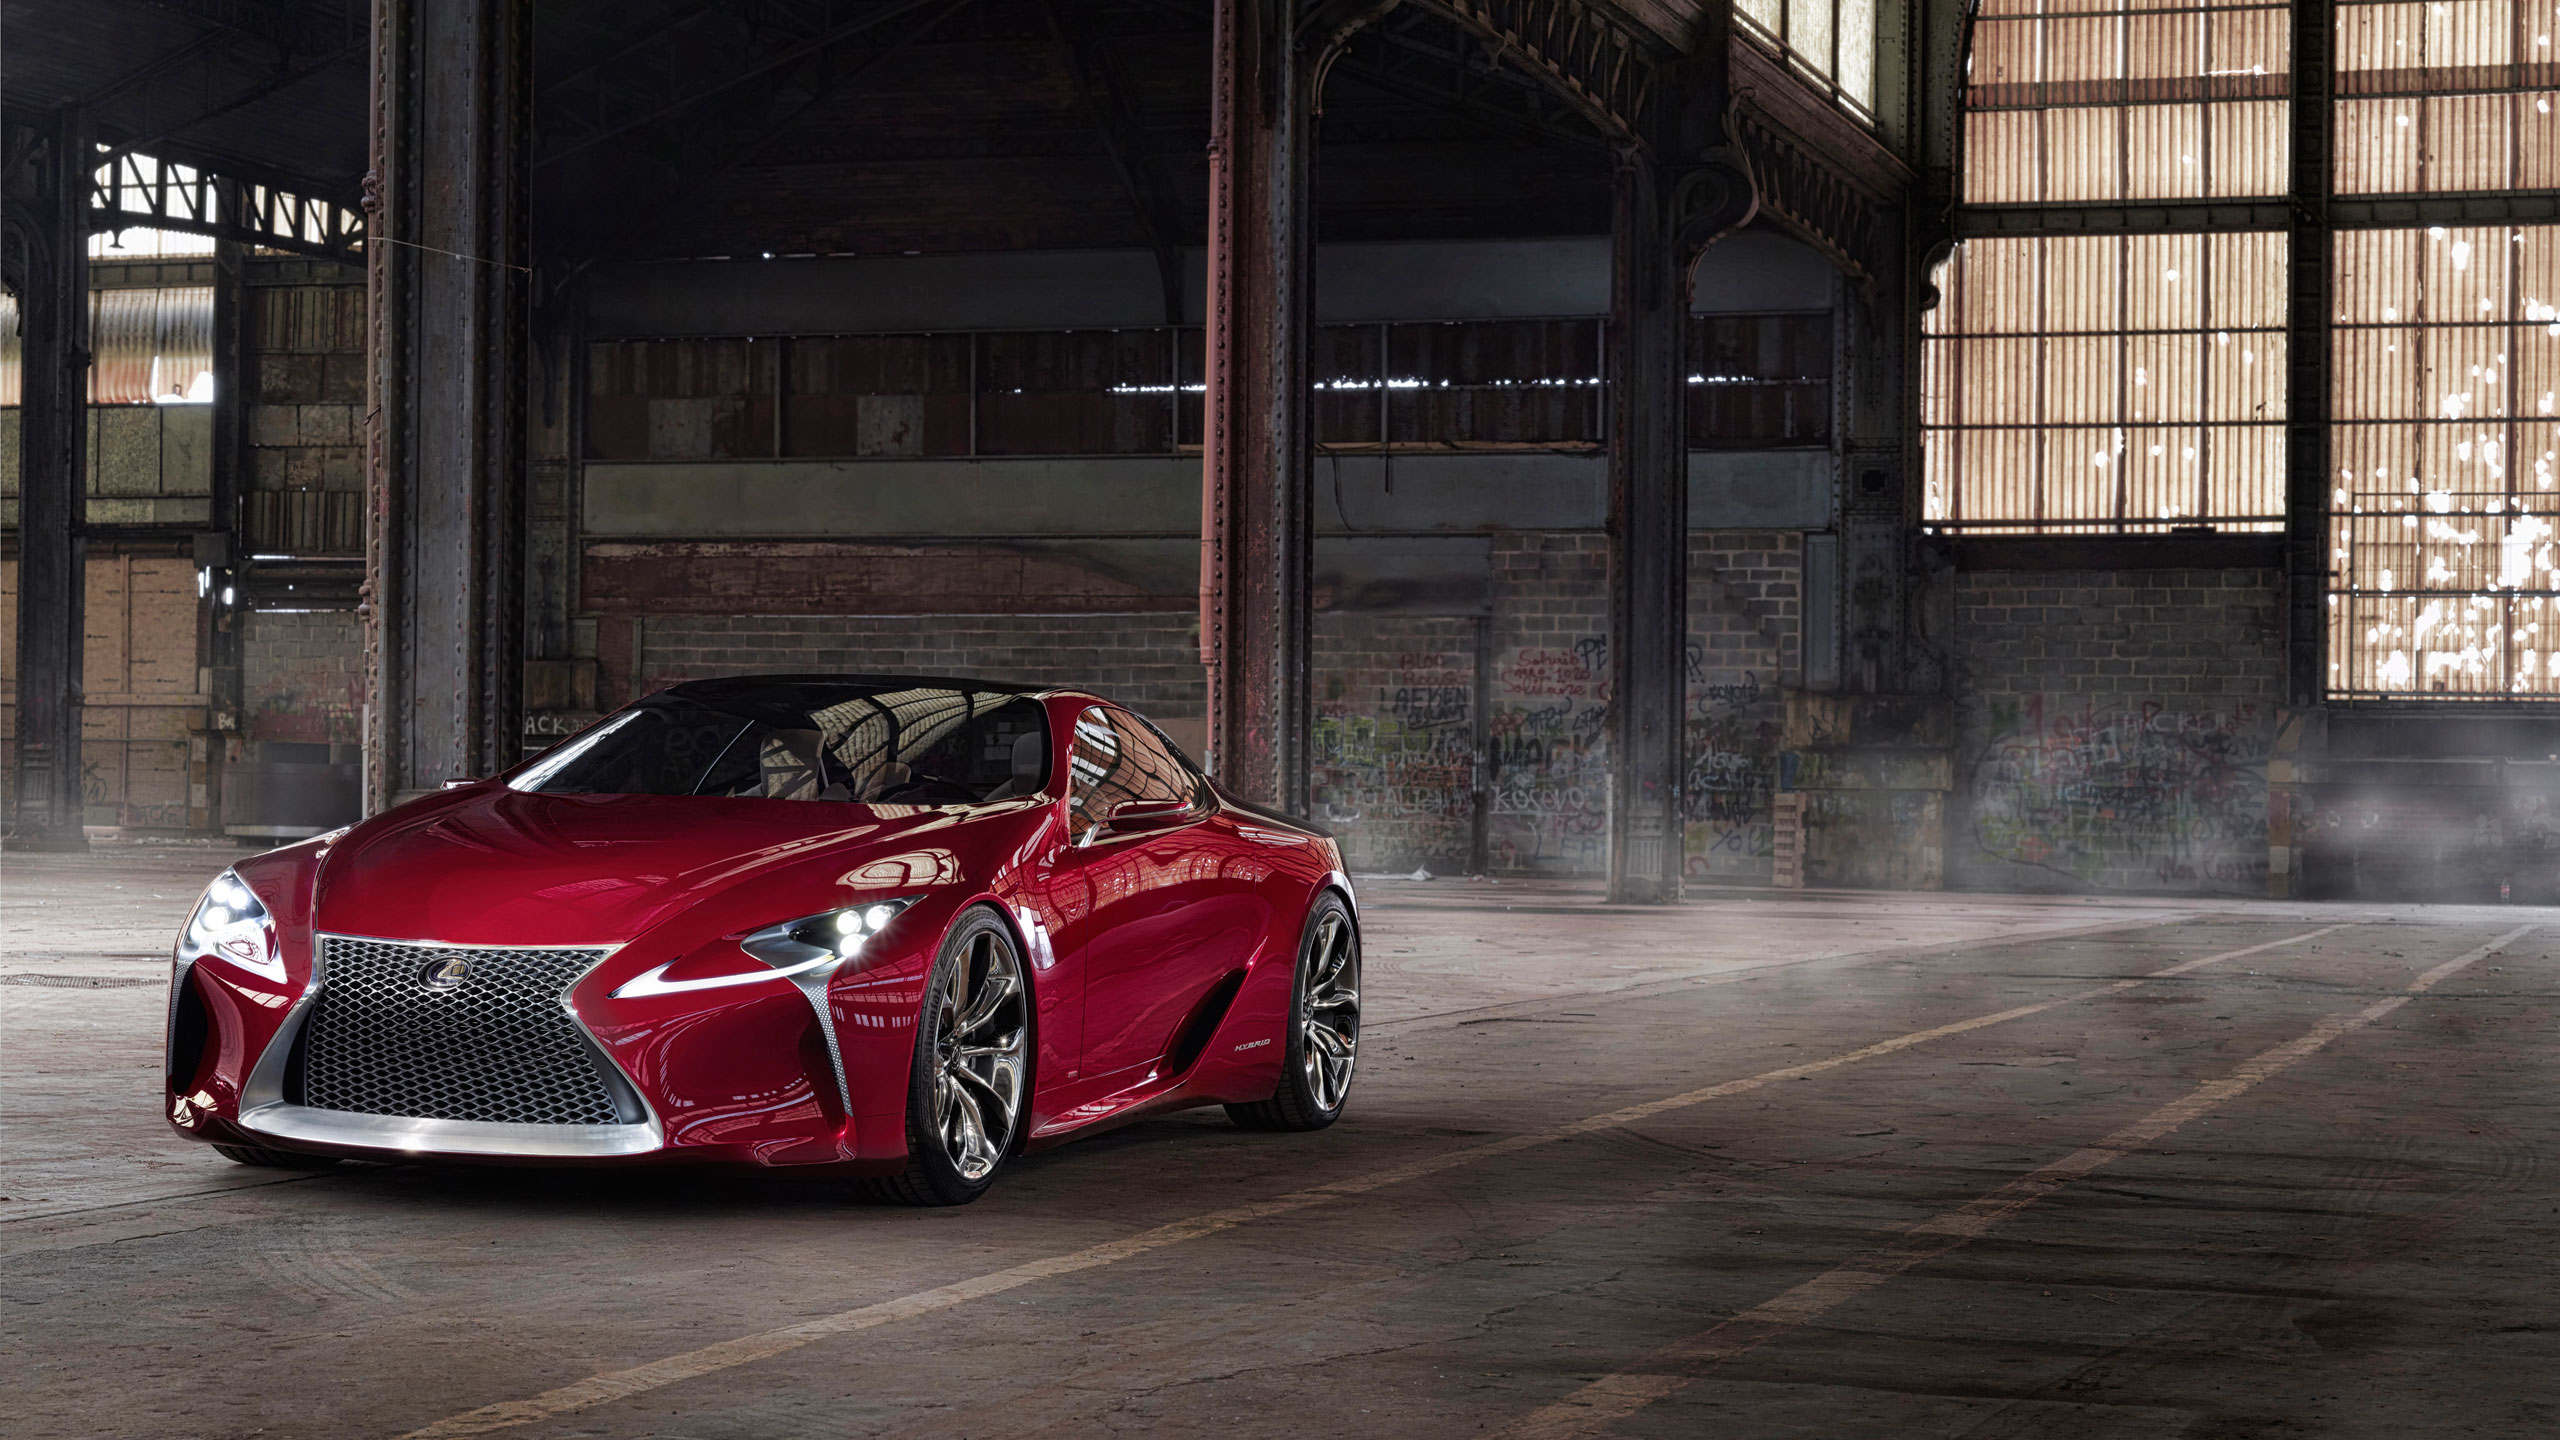 Full Hd Car Wallpapers 1920x1080 Download 20 Stunning Hd Lexus Wallpapers